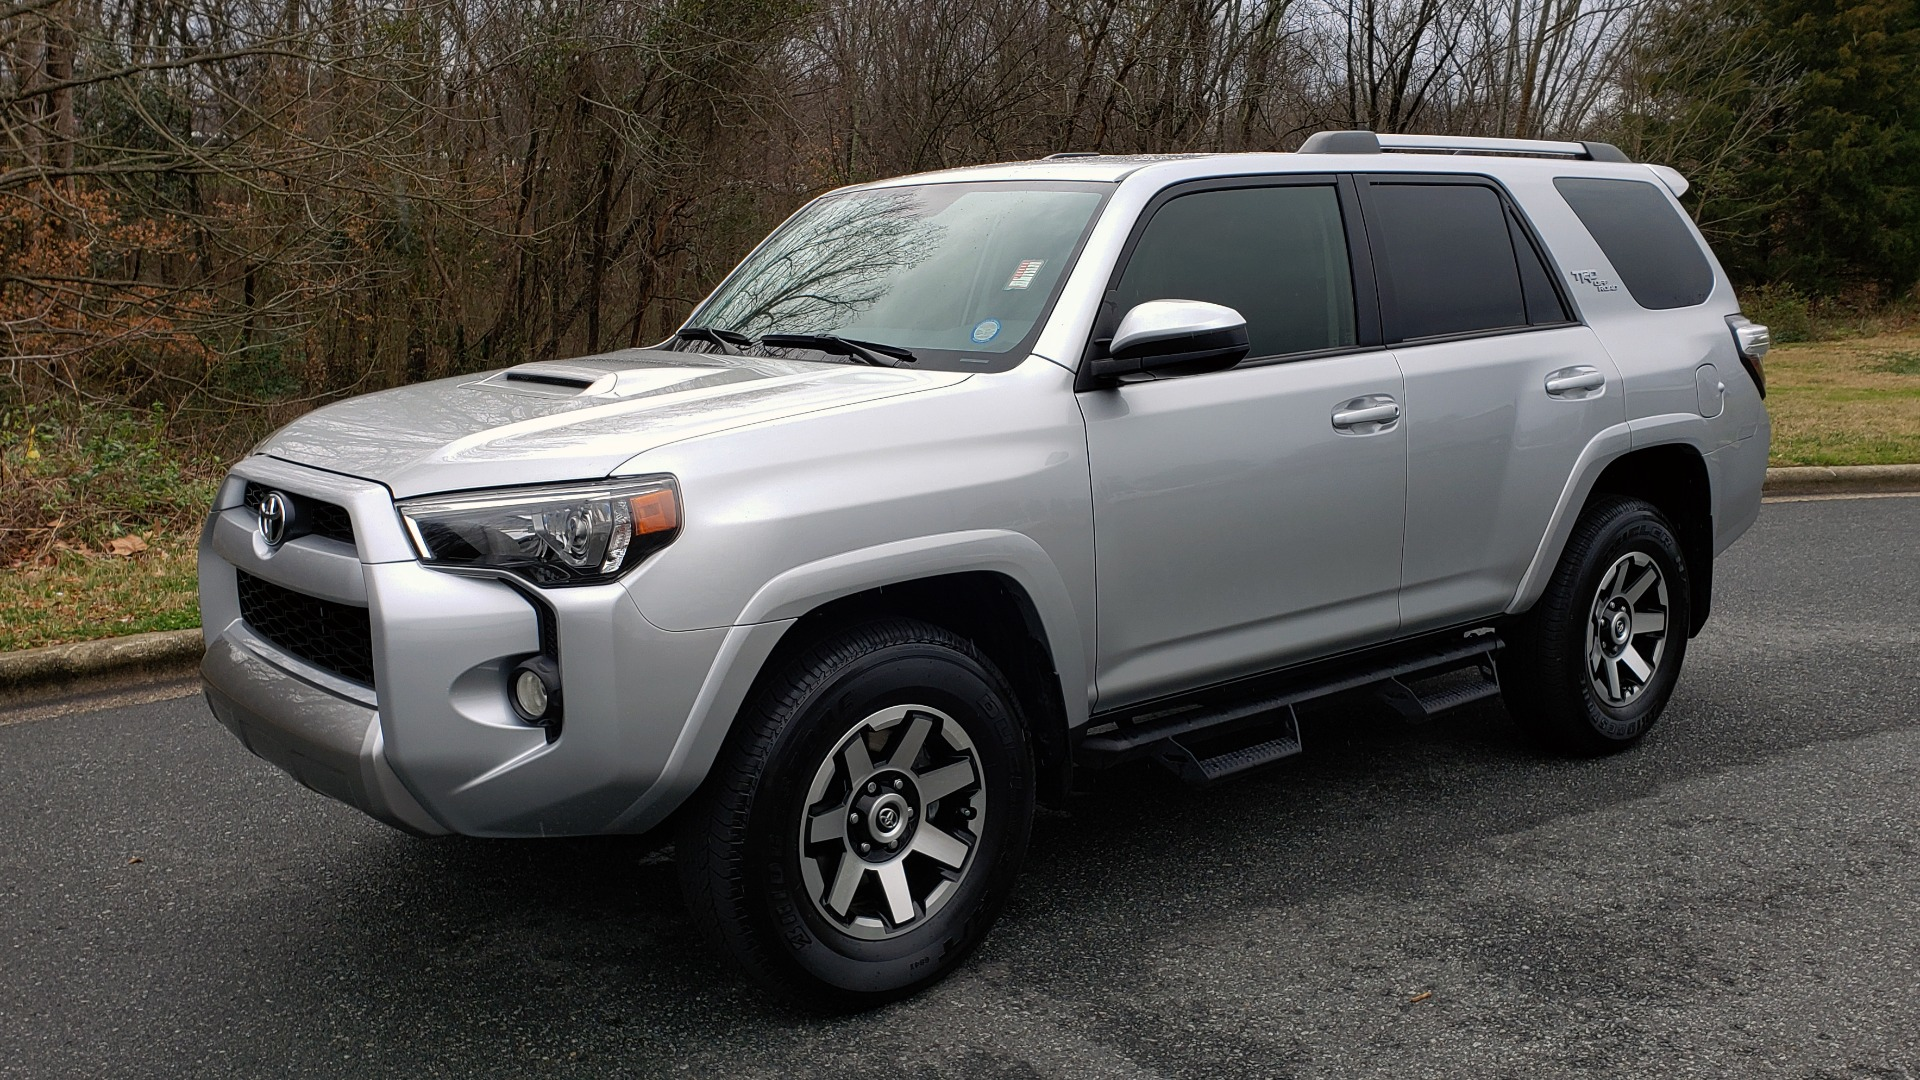 Used 2018 Toyota 4RUNNER TRD OFF-ROAD 4X4 / V6 / AUTO / LEATHER / LOW MILES! for sale Sold at Formula Imports in Charlotte NC 28227 1